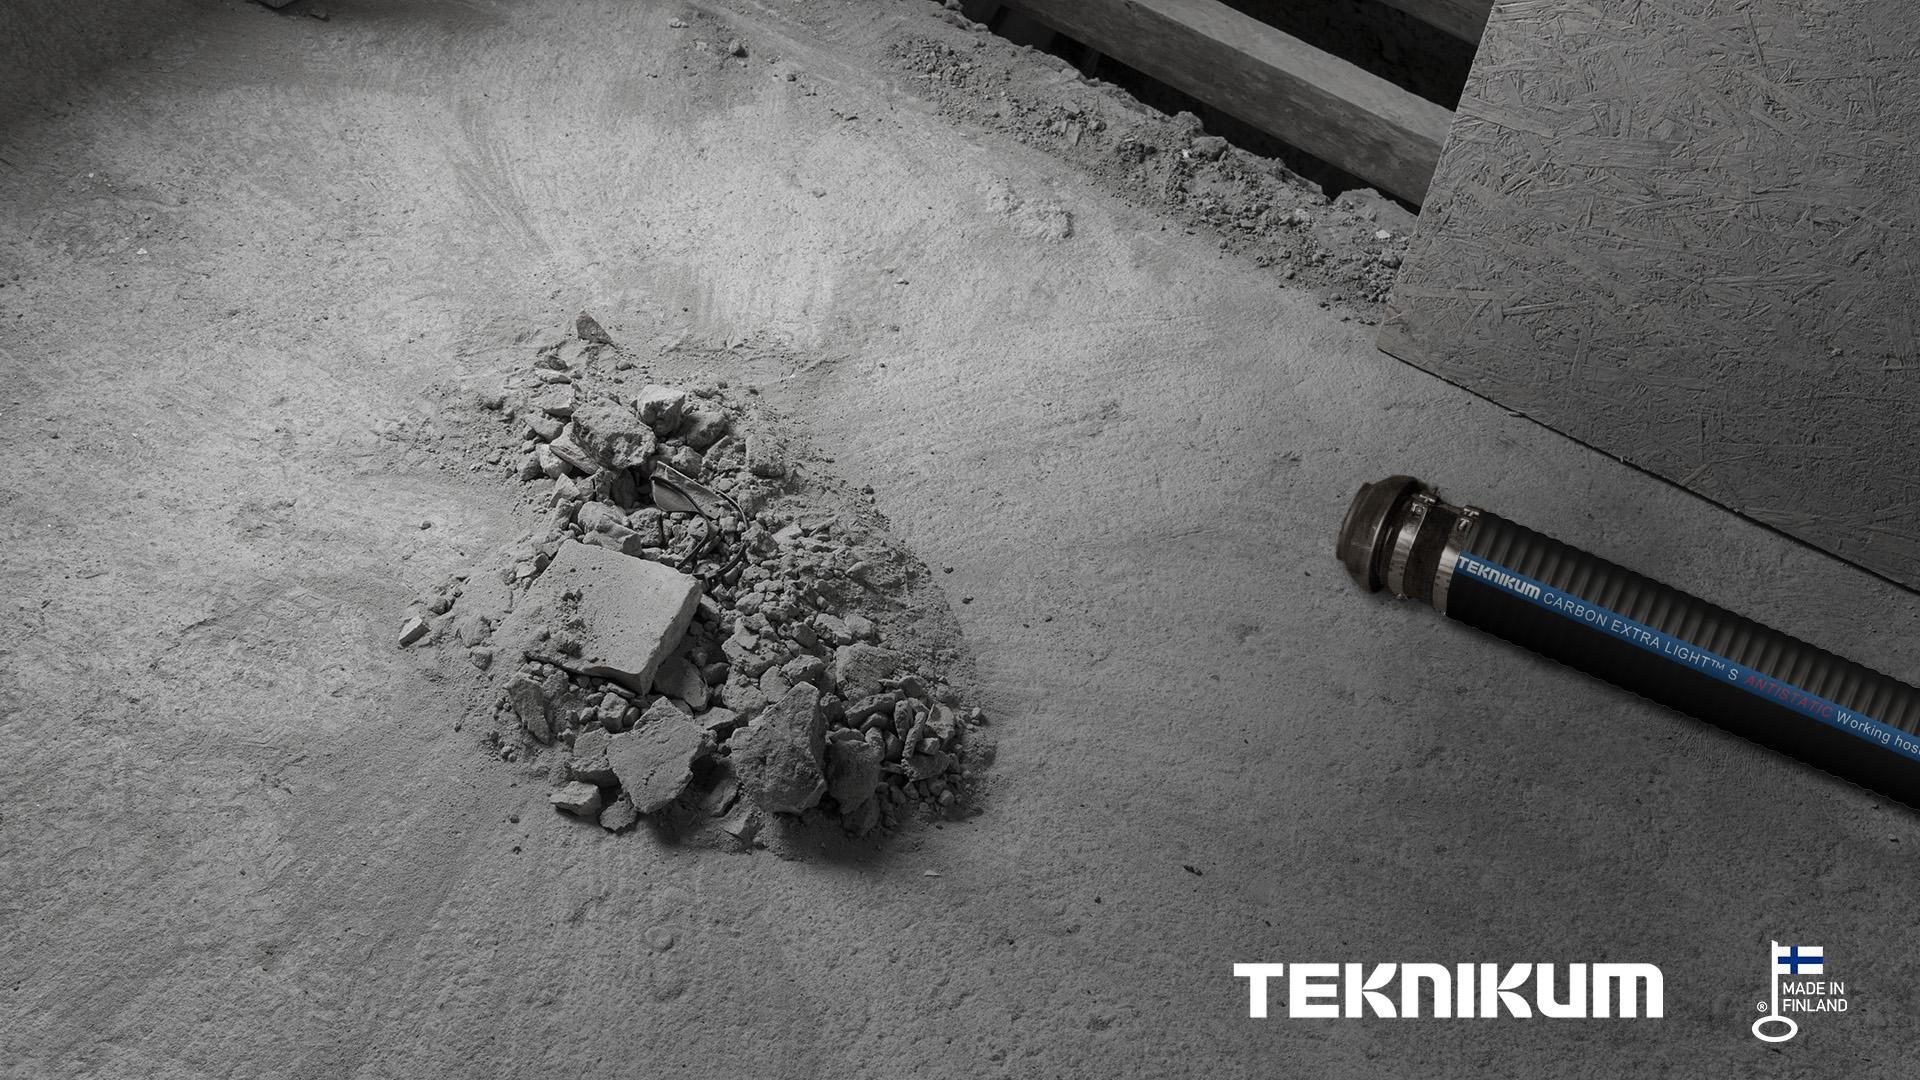 Teknikum CARBON EXTRA LIGHT S Antistatic for industrial vacuum cleaning